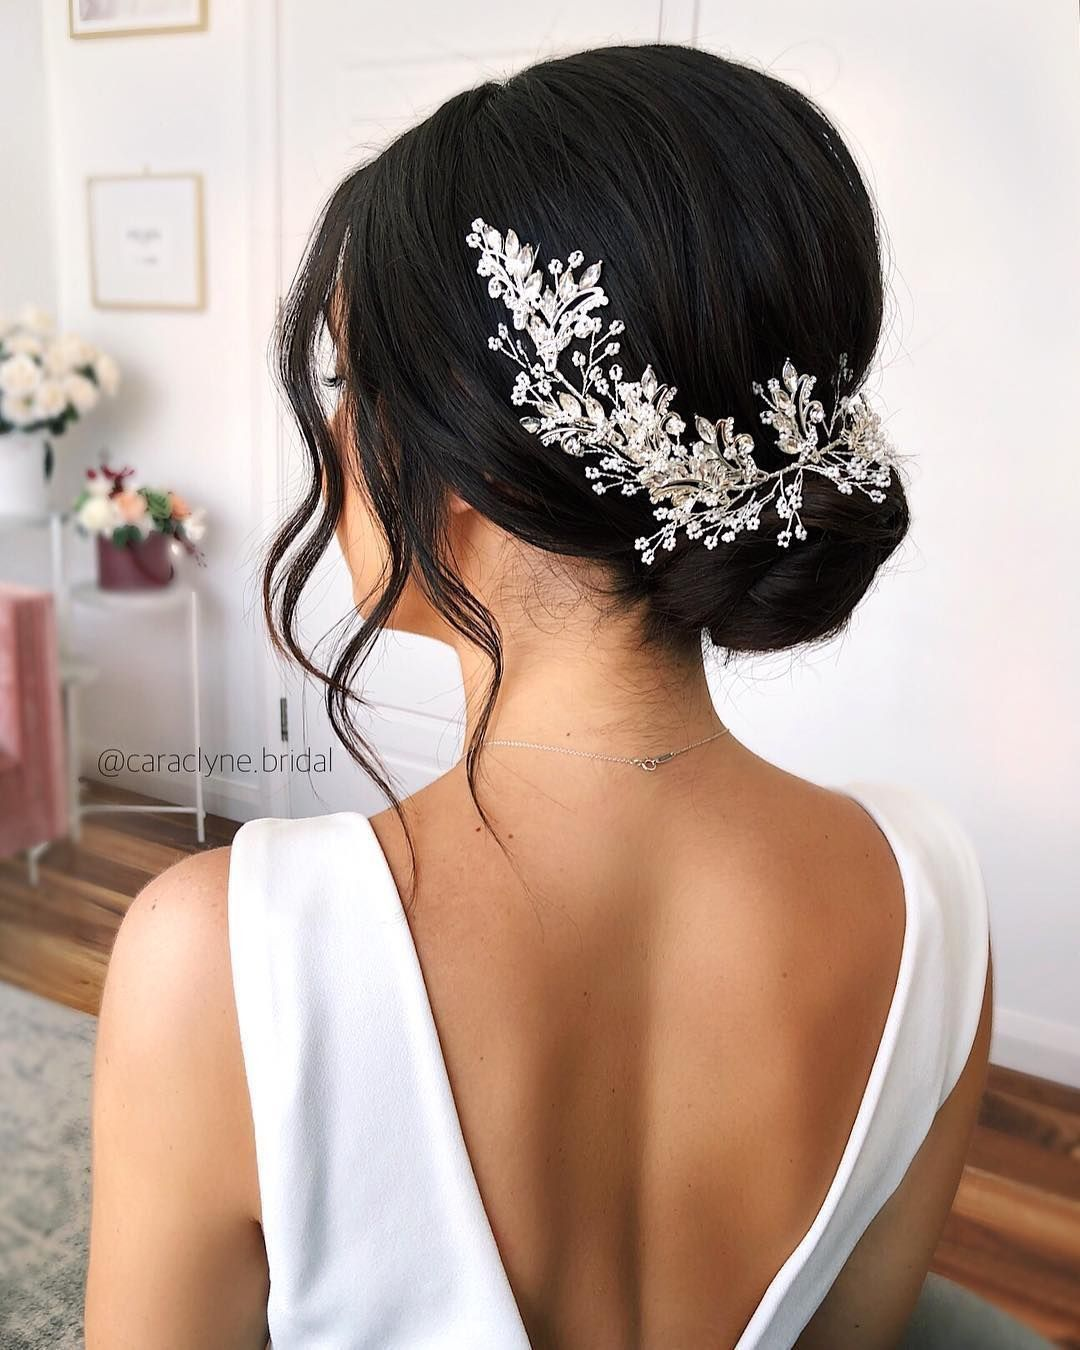 30 Wedding Hairstyles With Flowers You May Love - Page 23 of 30 - You and Big Day